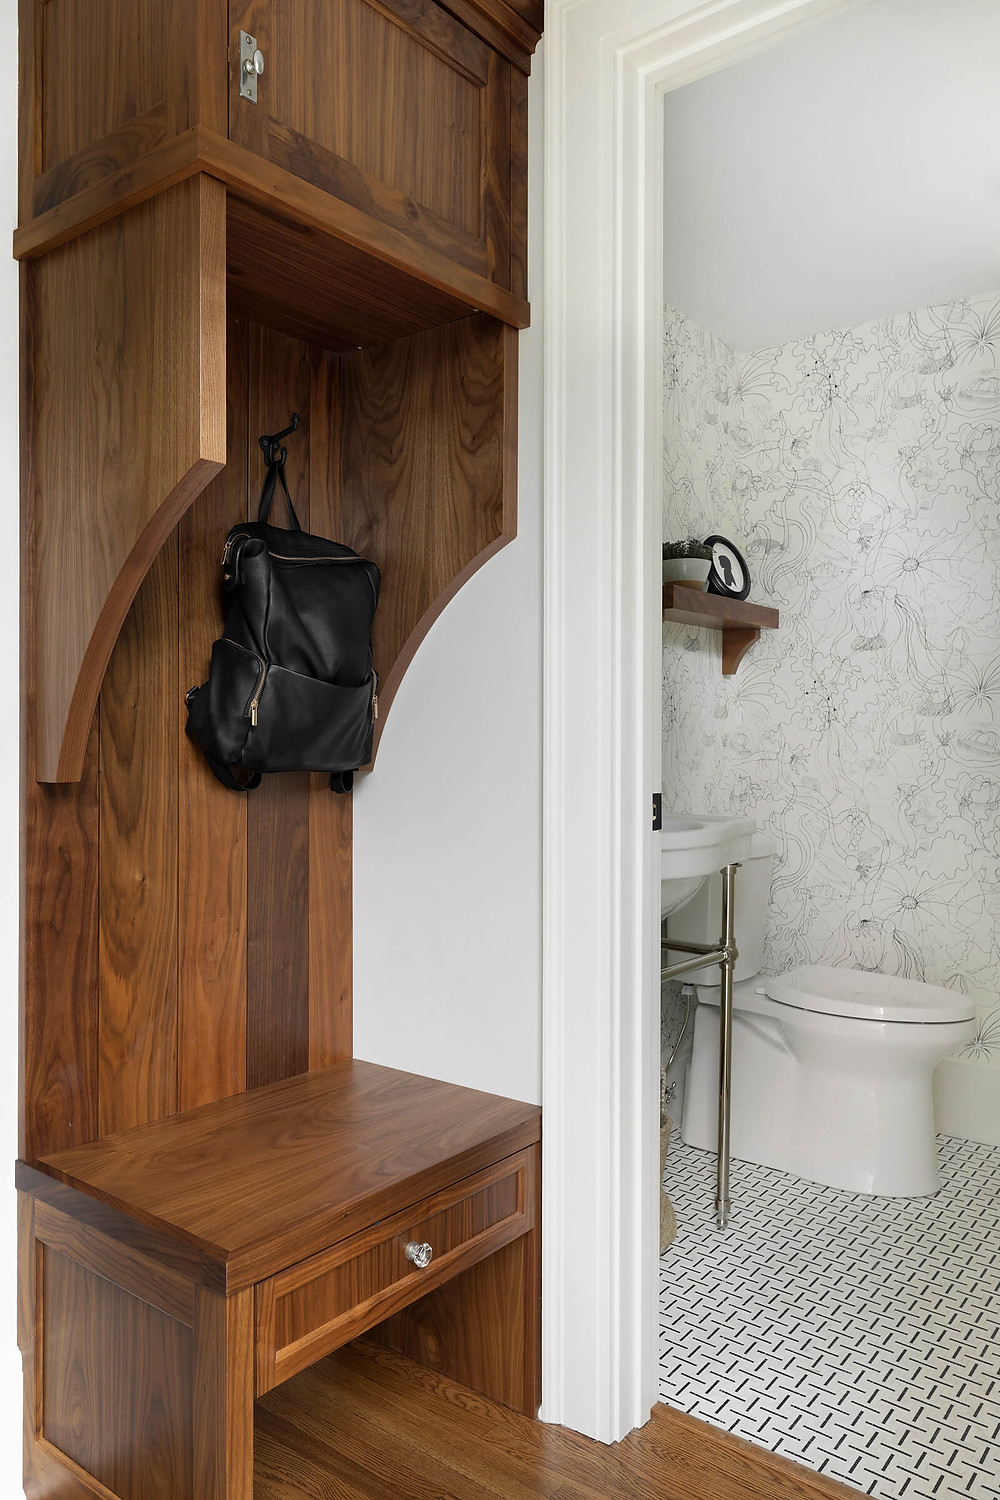 Walnut mudroom cabinet with vintage hardware seeing in to powder bathroom with playful wallpaper and black and white marble mosaic floor tile